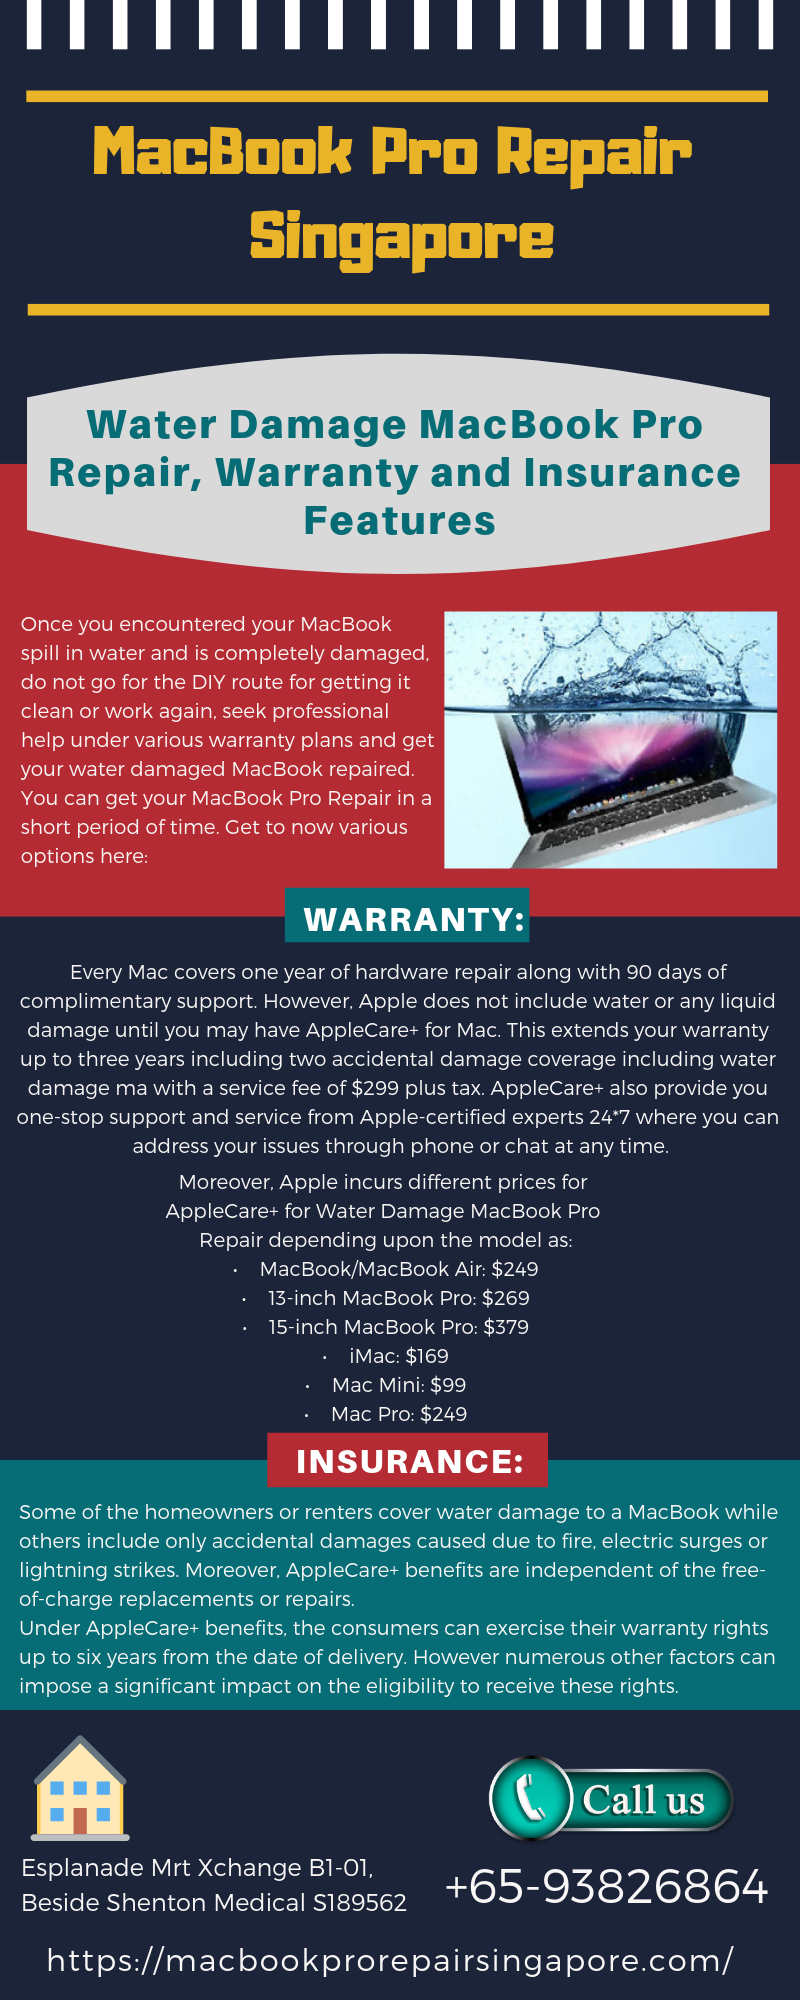 Water Damage MacBook Pro Repair, Warranty and Insurance